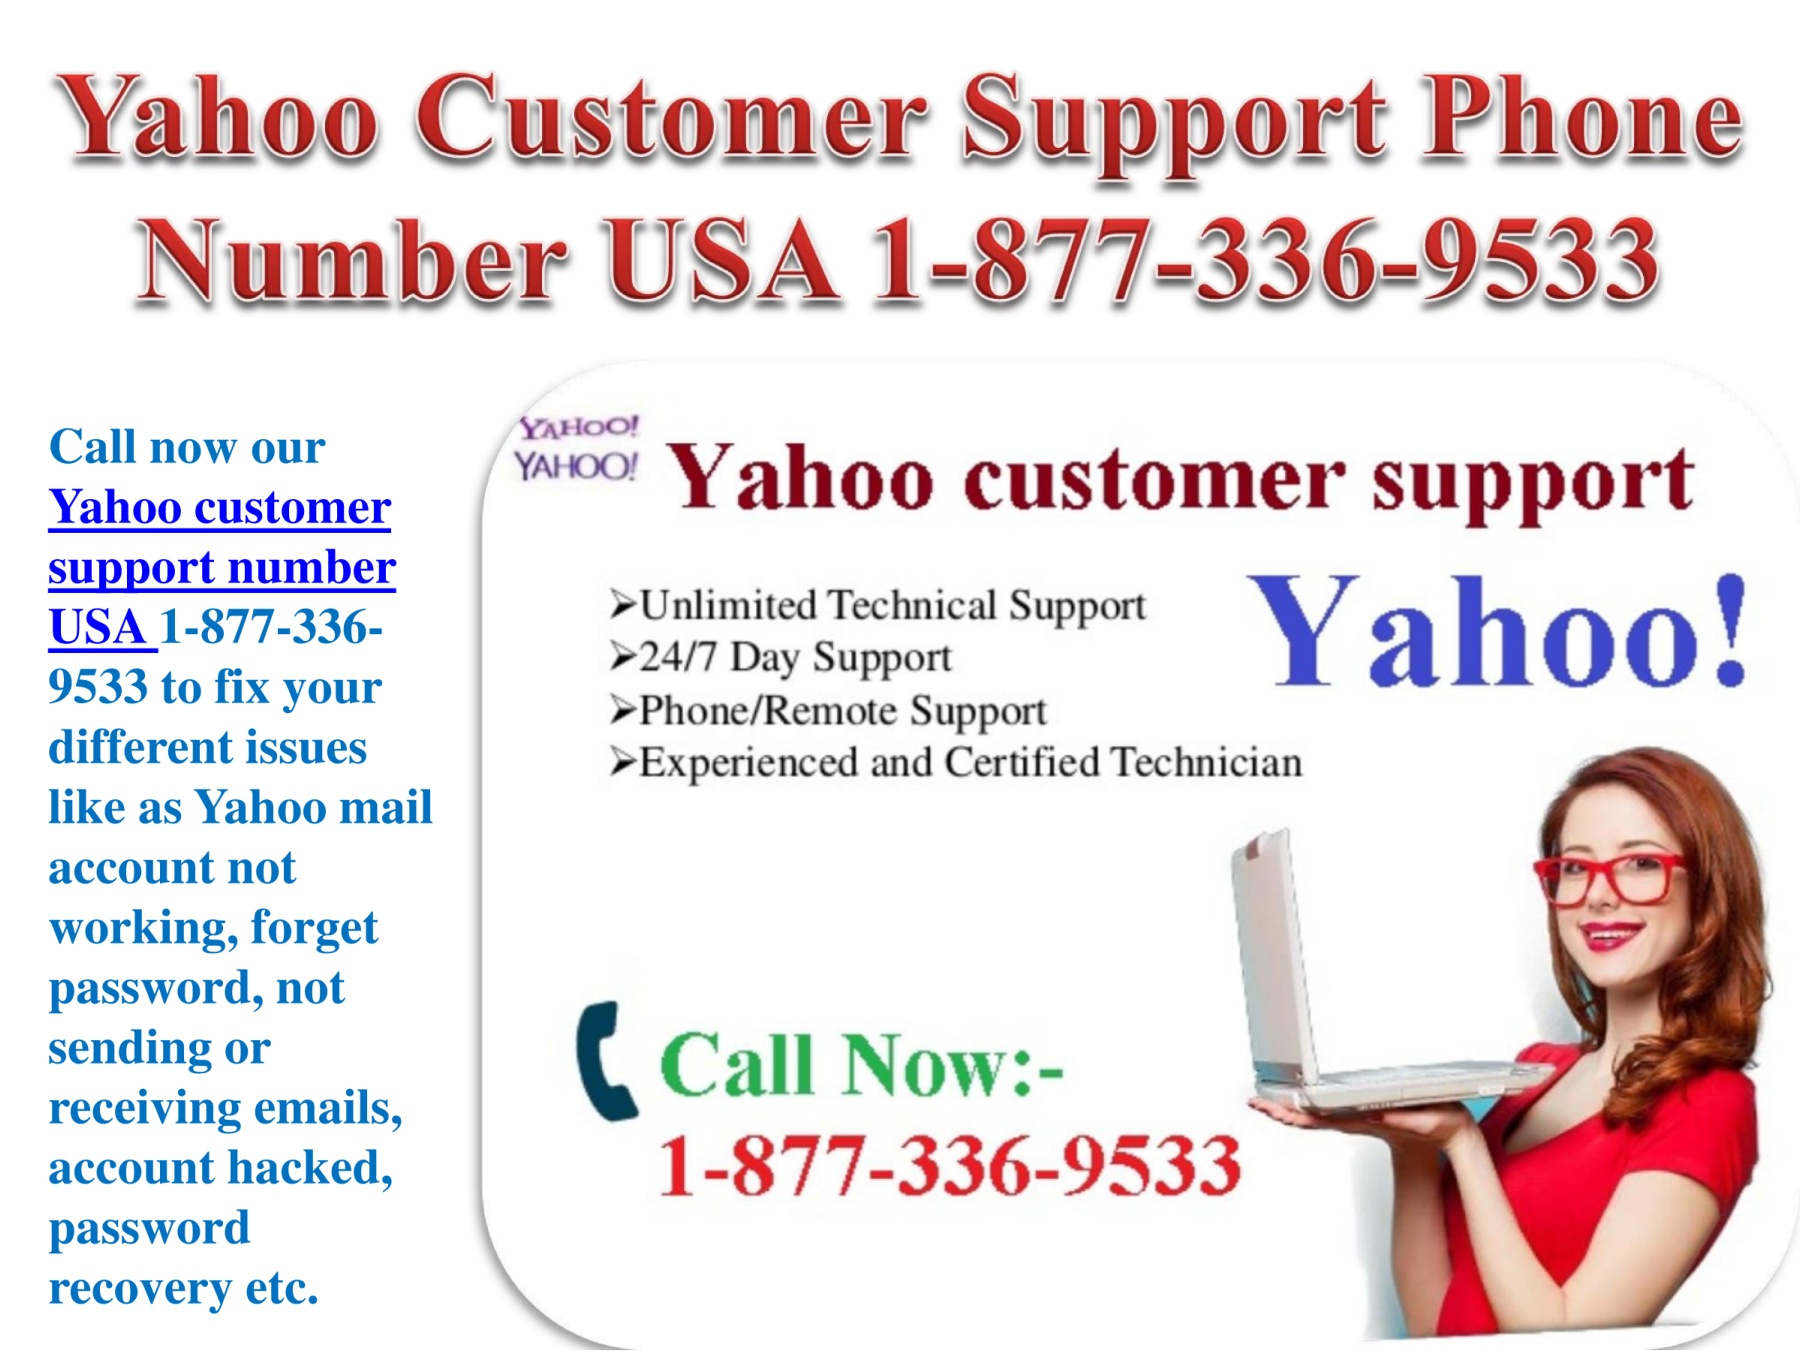 yahoo customer support phone number usa 1 877 336 9533 pages 1 4 rh anyflip com yahoo help desk phone number uk yahoo helpline phone number